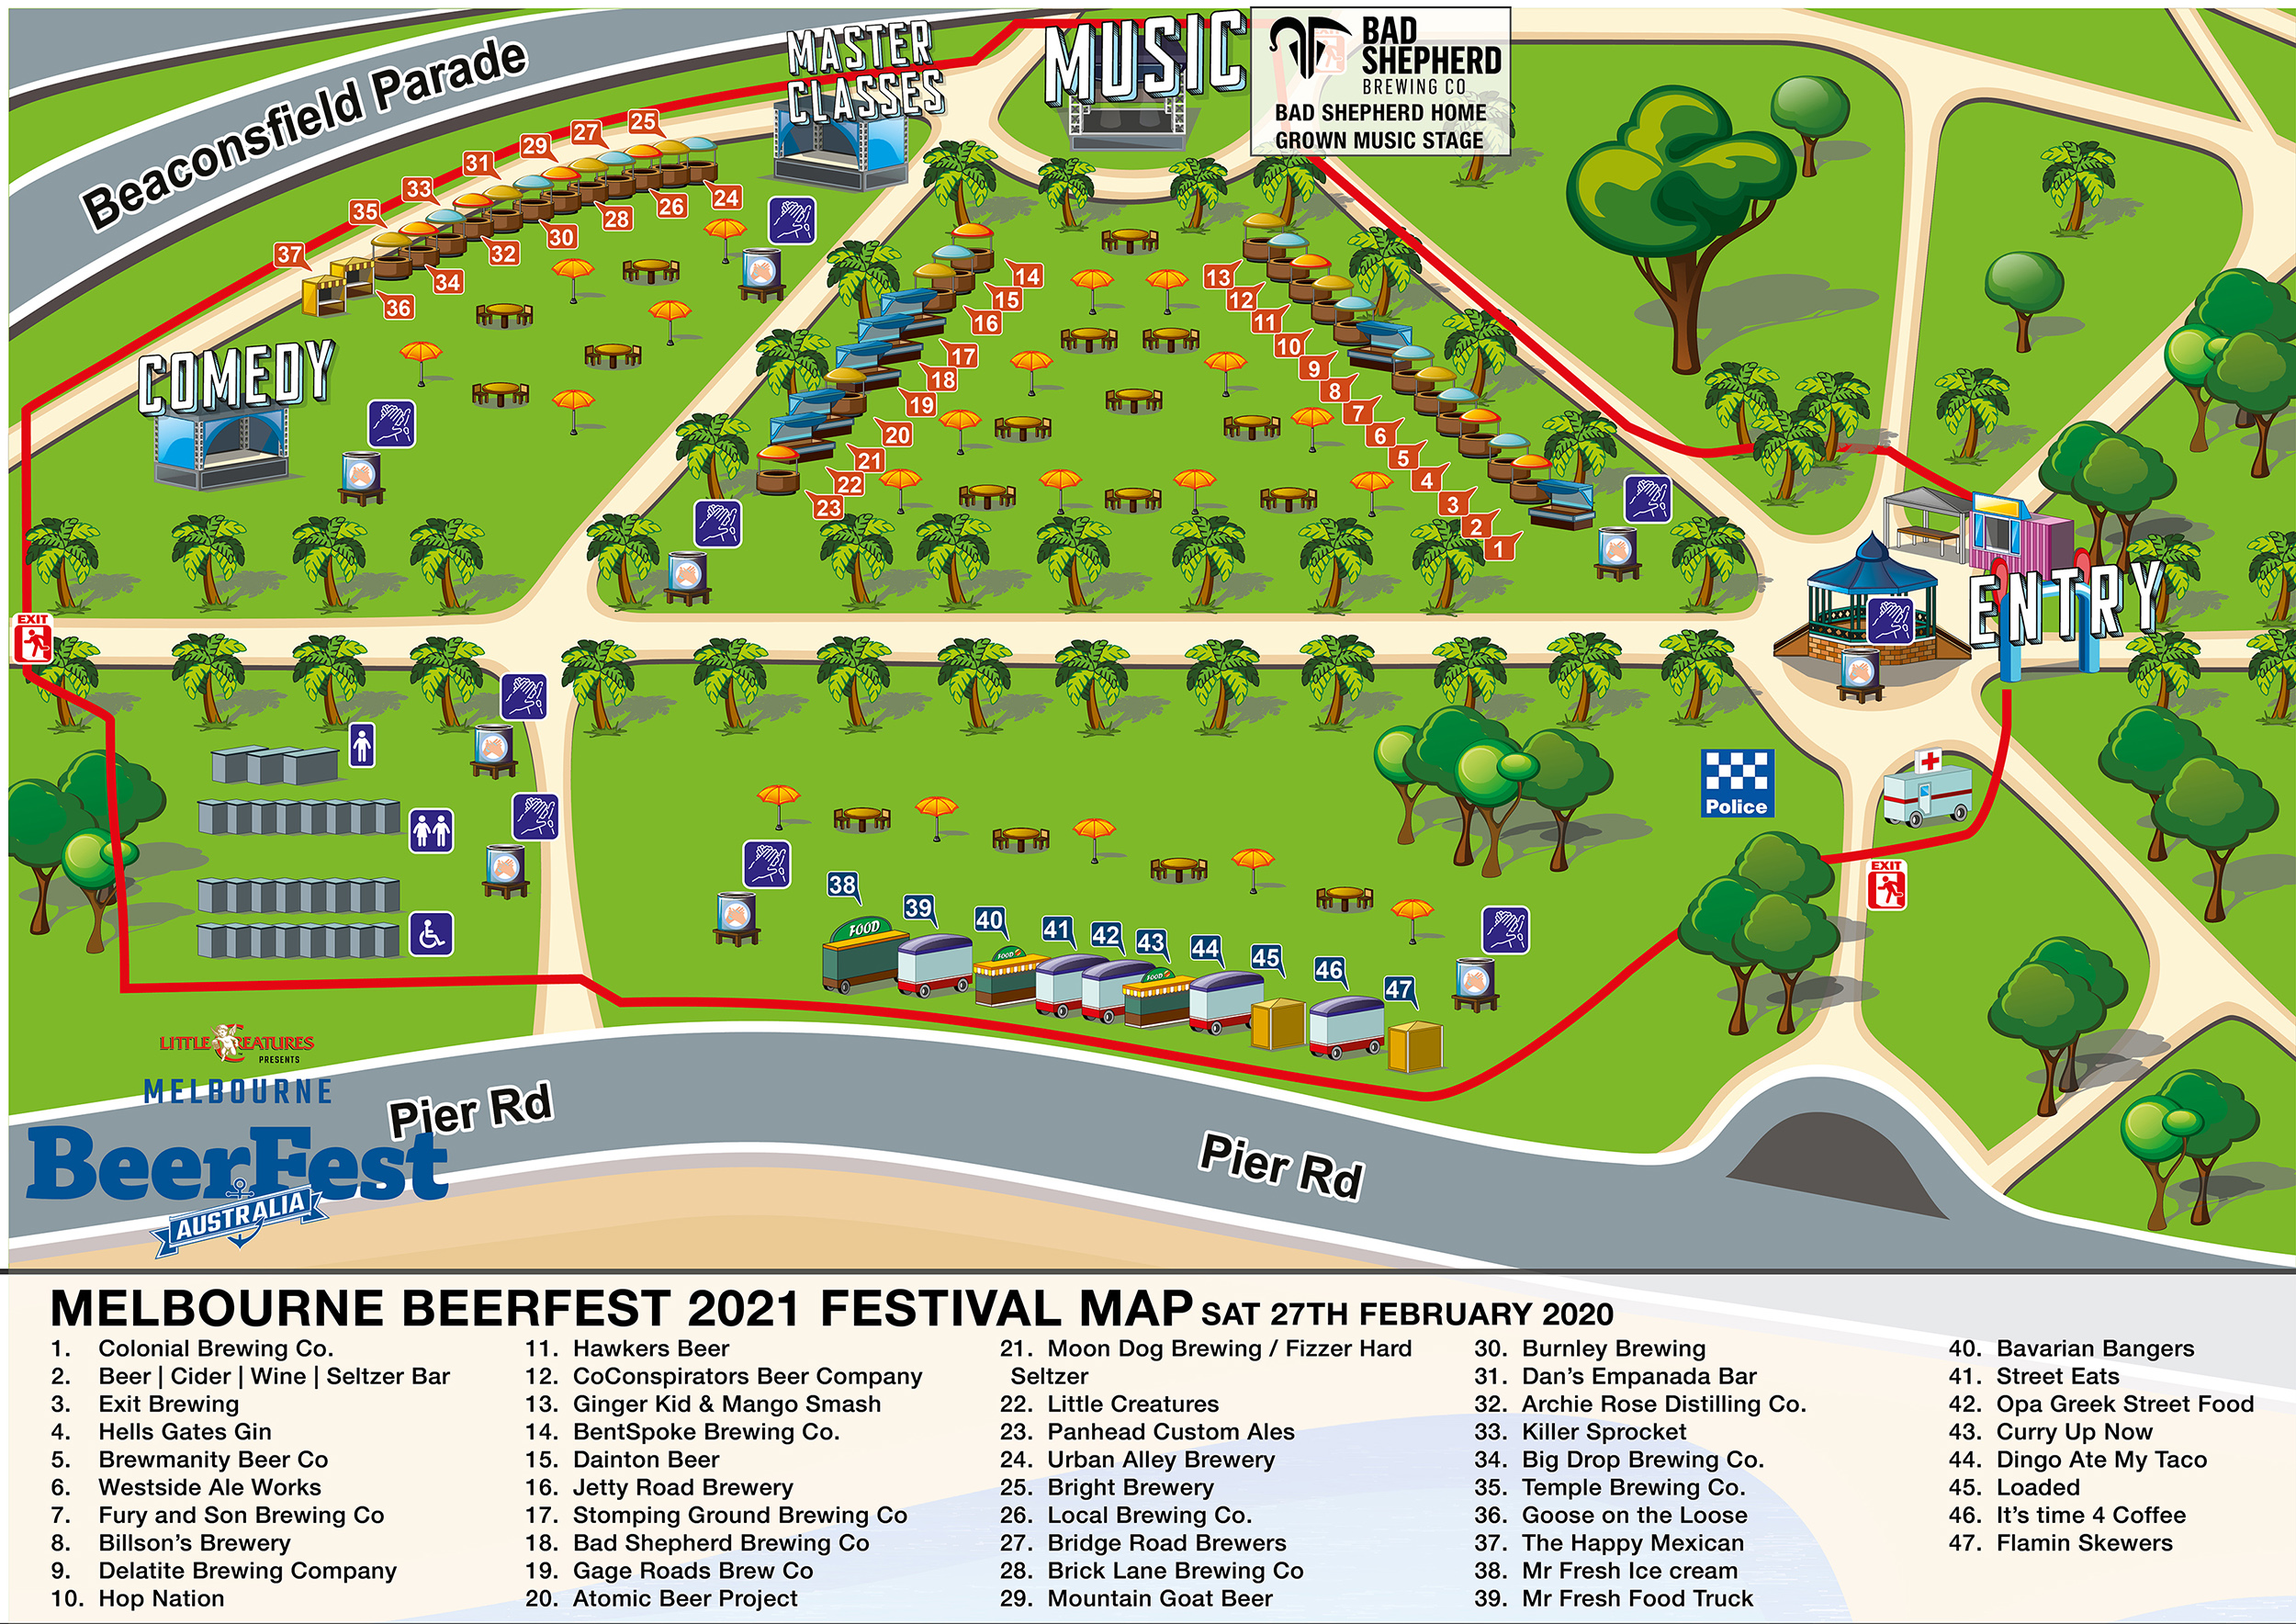 Melbourne BeerFest 2021 Festival Map